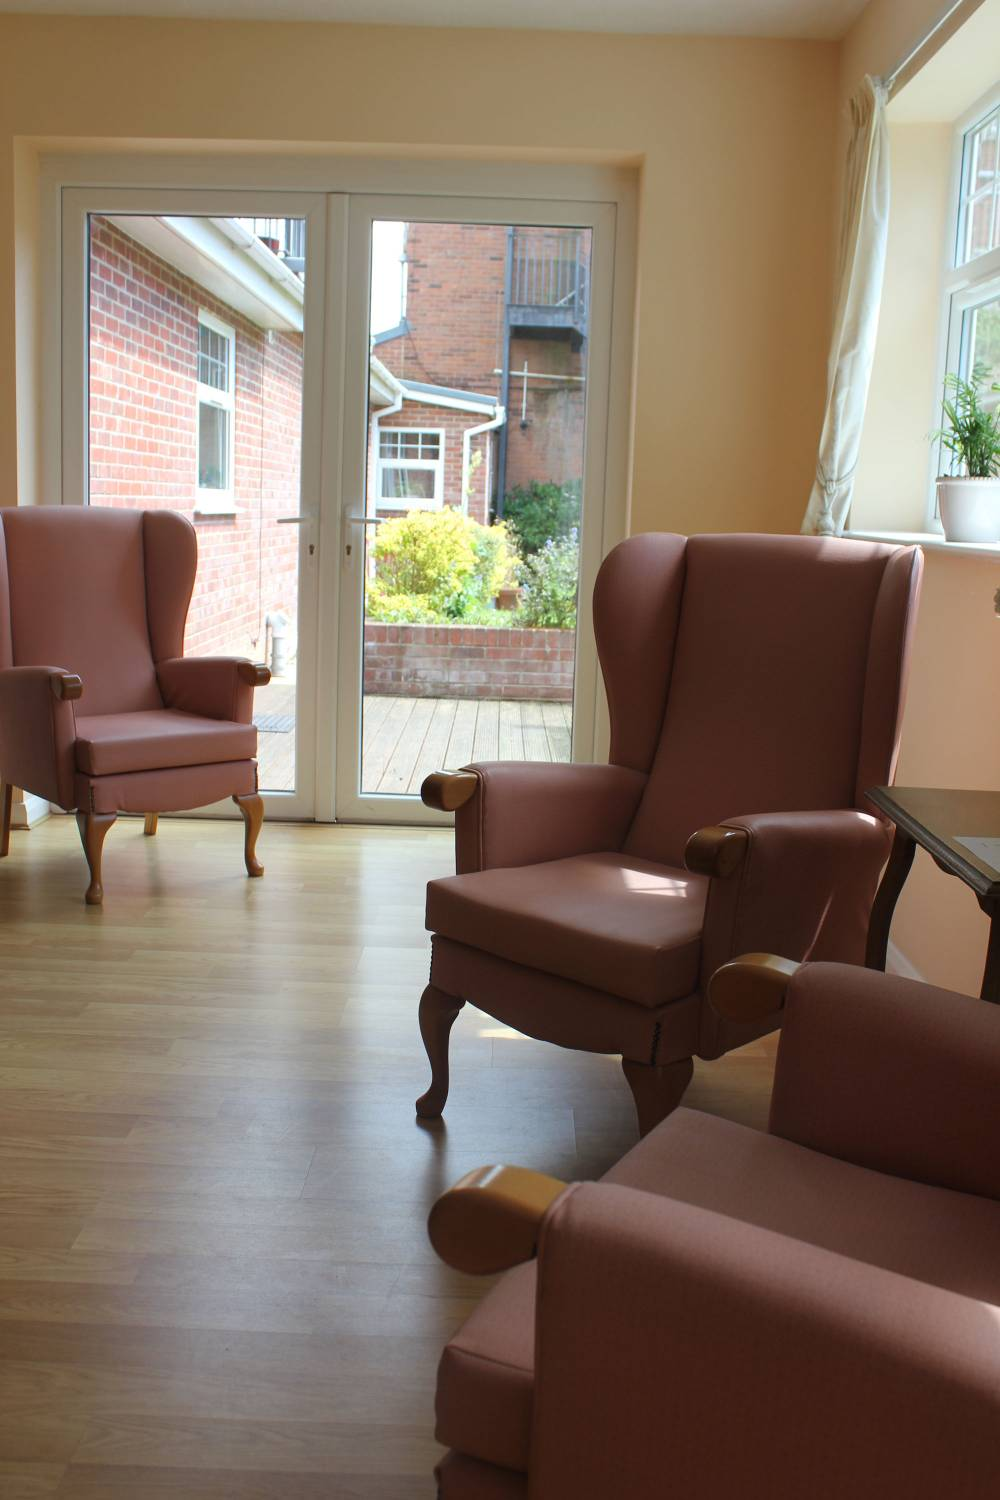 a range of facilities at Bradfield Residential Home.